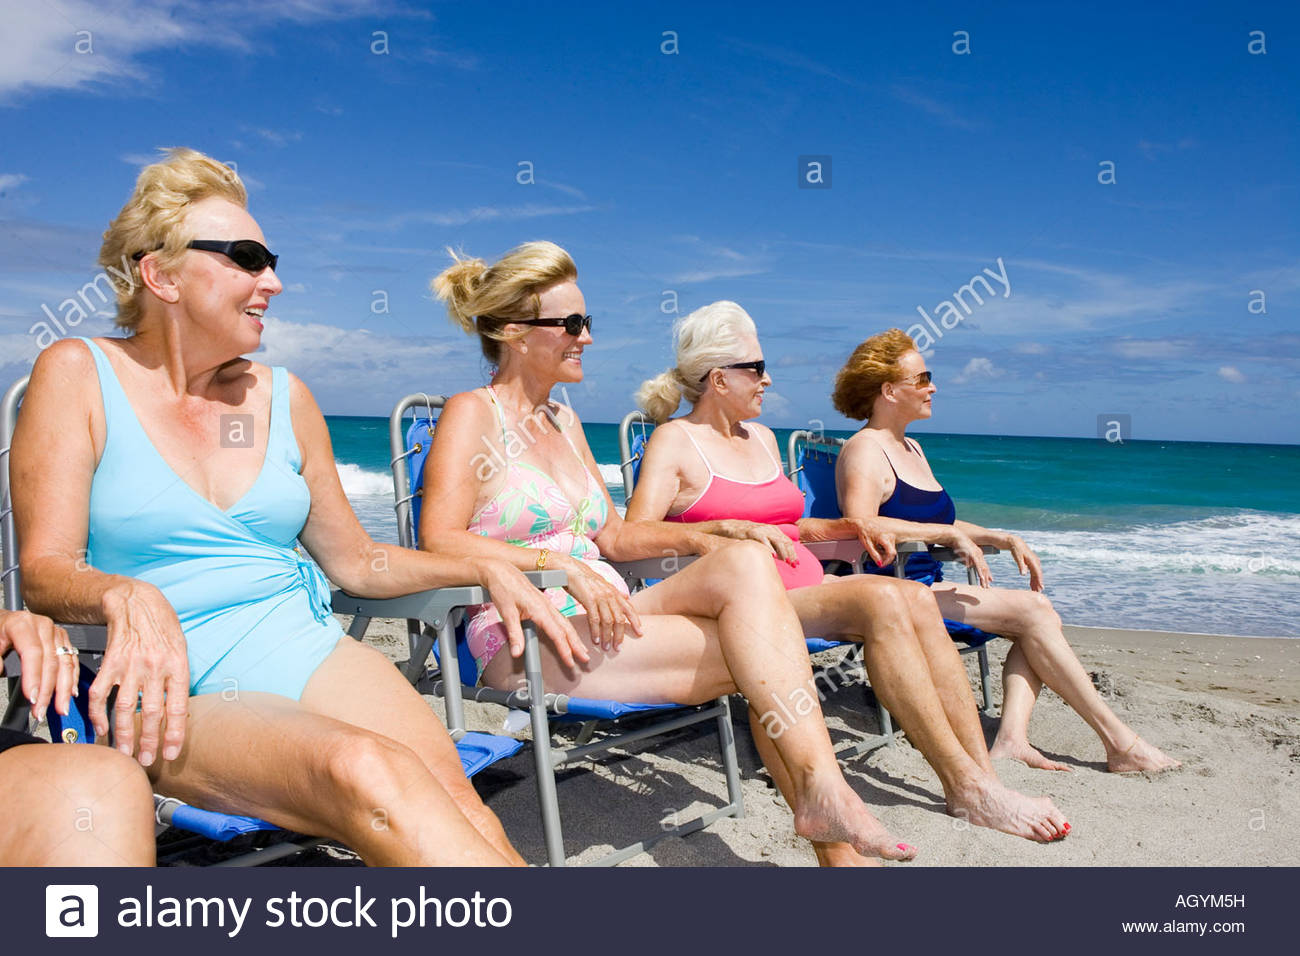 group of senior women in beach chairs stock photo: 14310076 - alamy